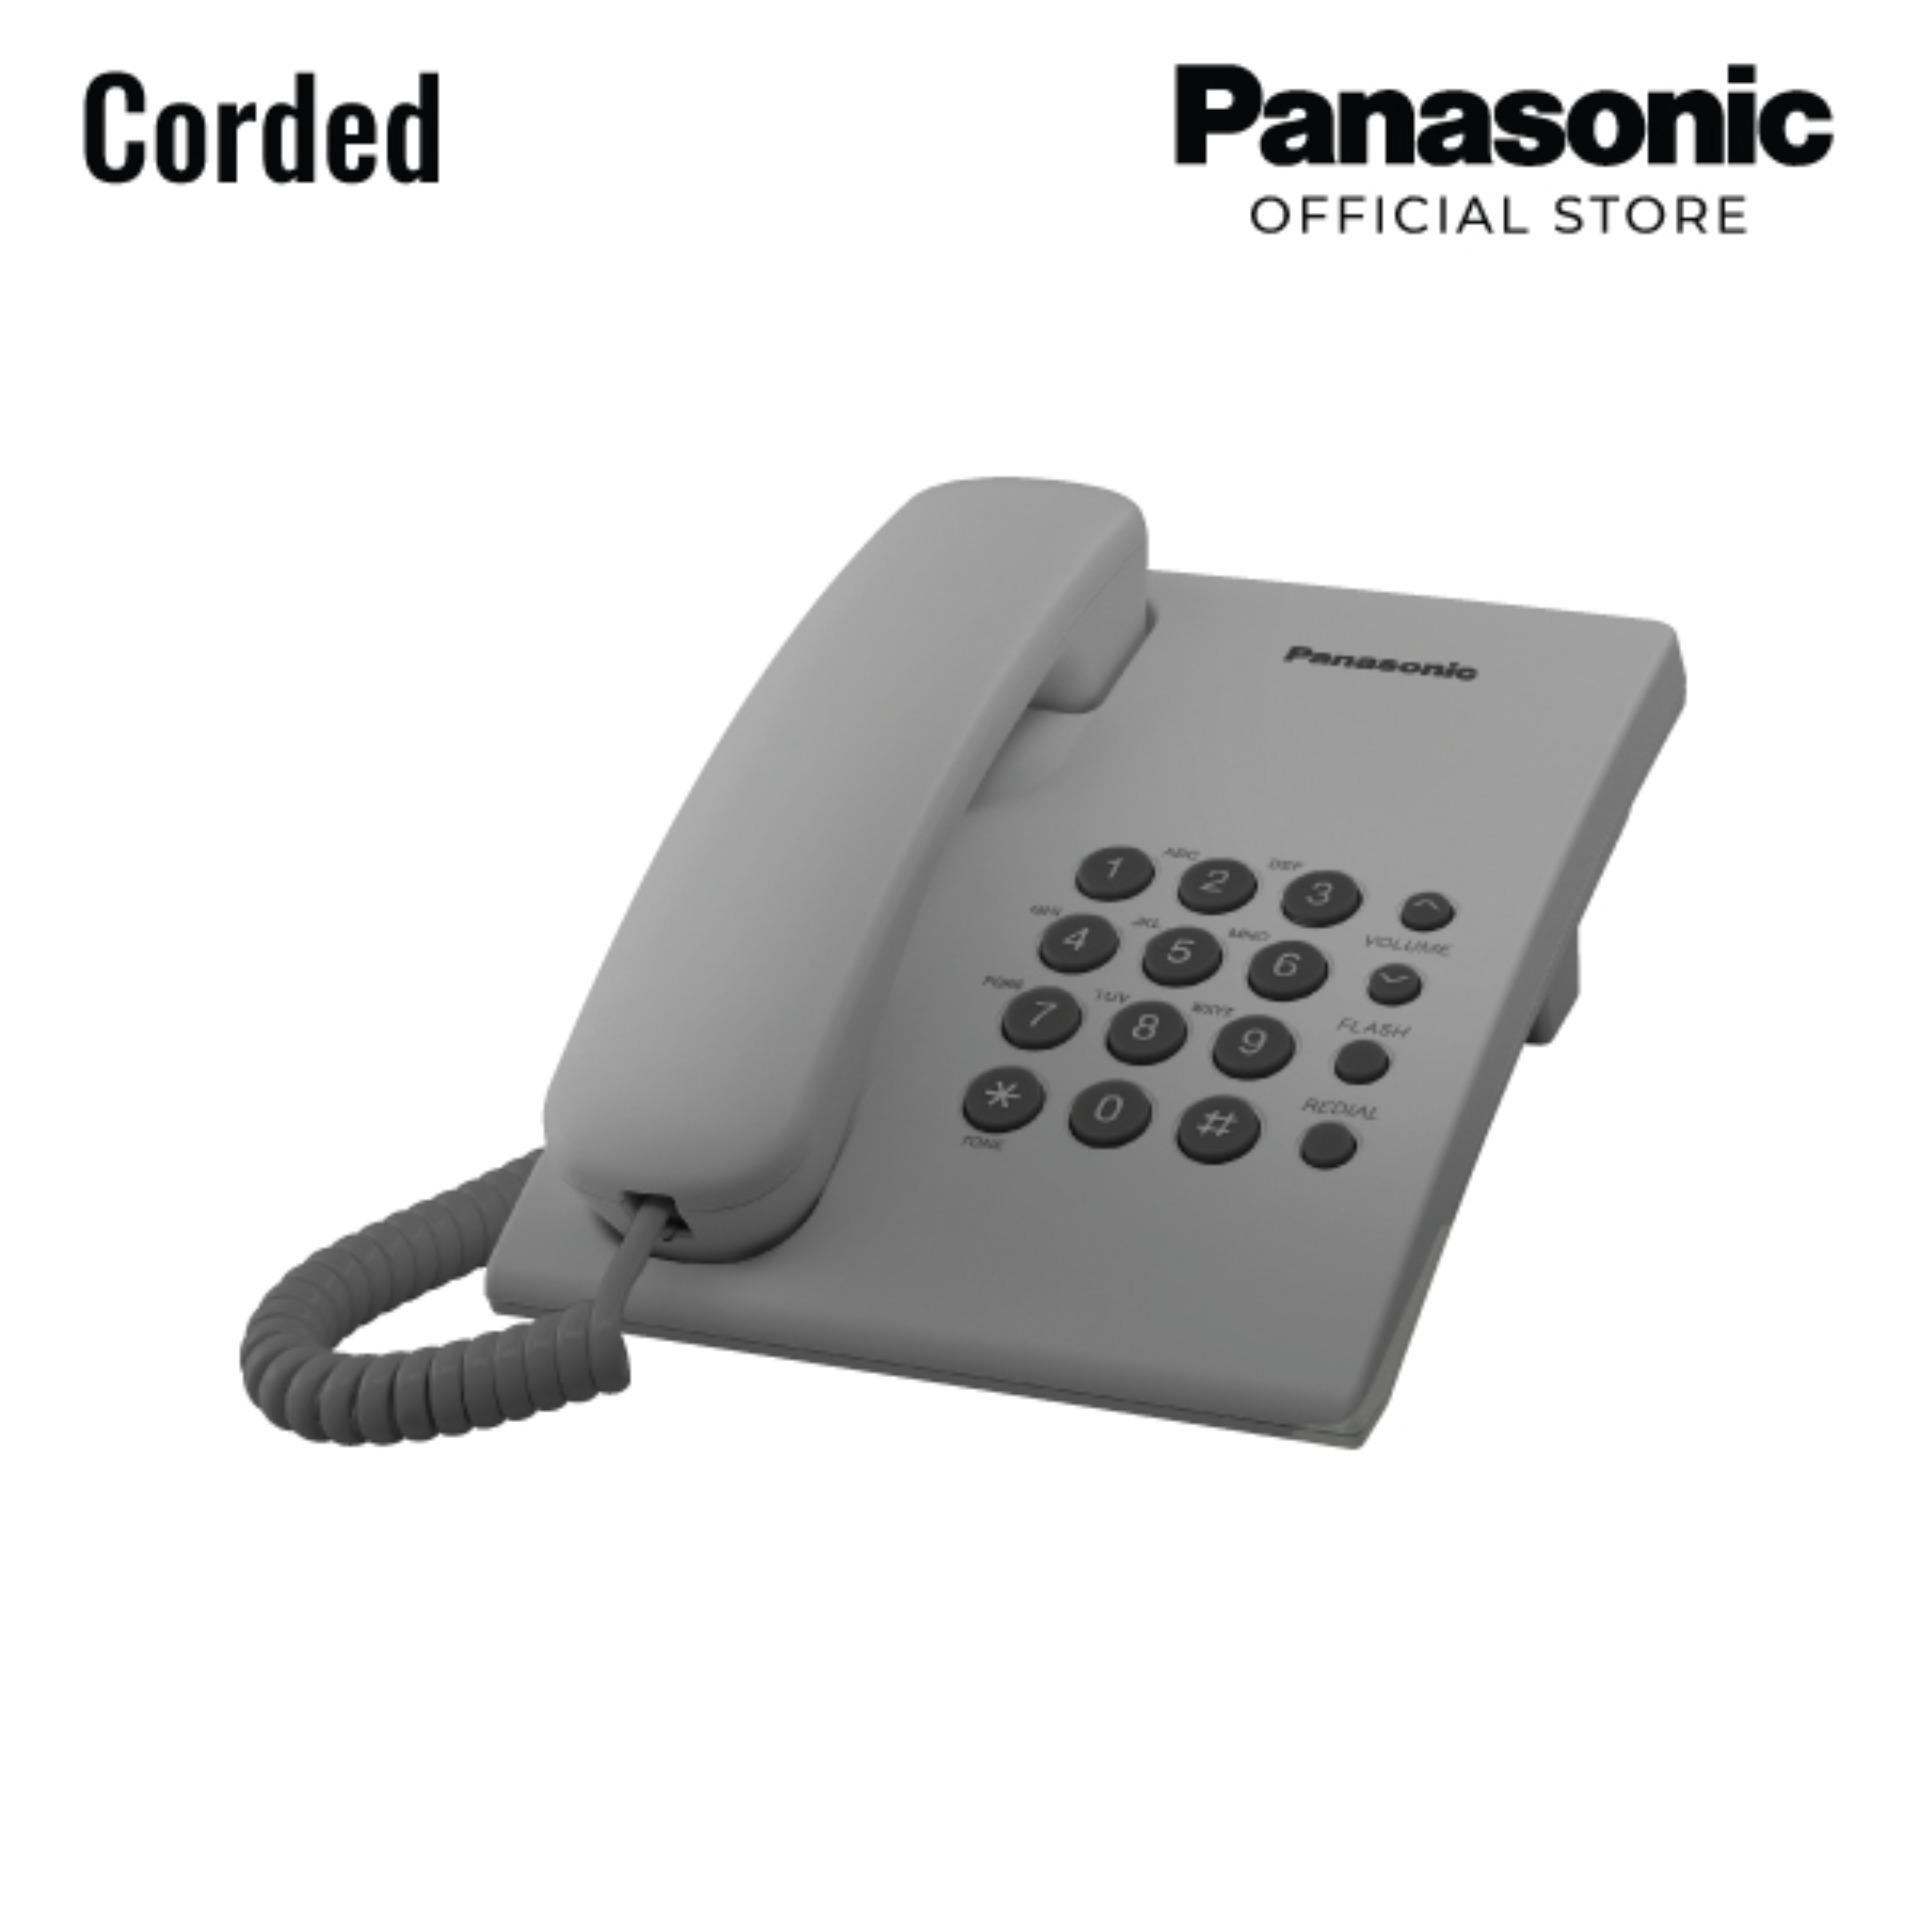 Telephone For Sale Landline Phone Prices Brands Specs In Classical Hybrid Circuit Panasonic Corded Kx Ts500mx Grey